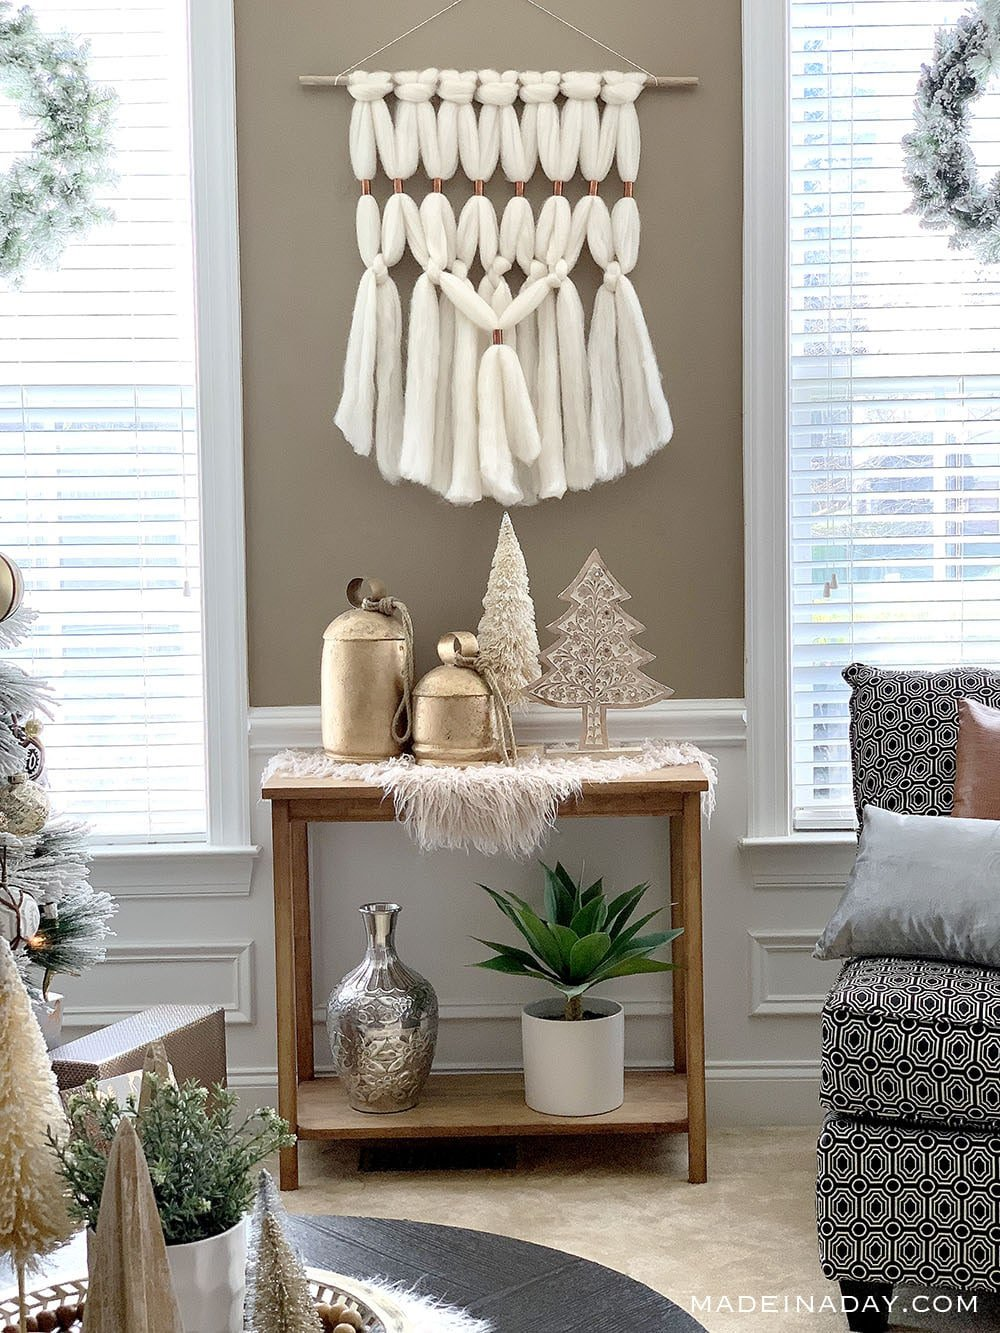 Eclectic Shabby Chic Free Style Bohemian Christmas Decorating, Farmhouse Boho Christmas